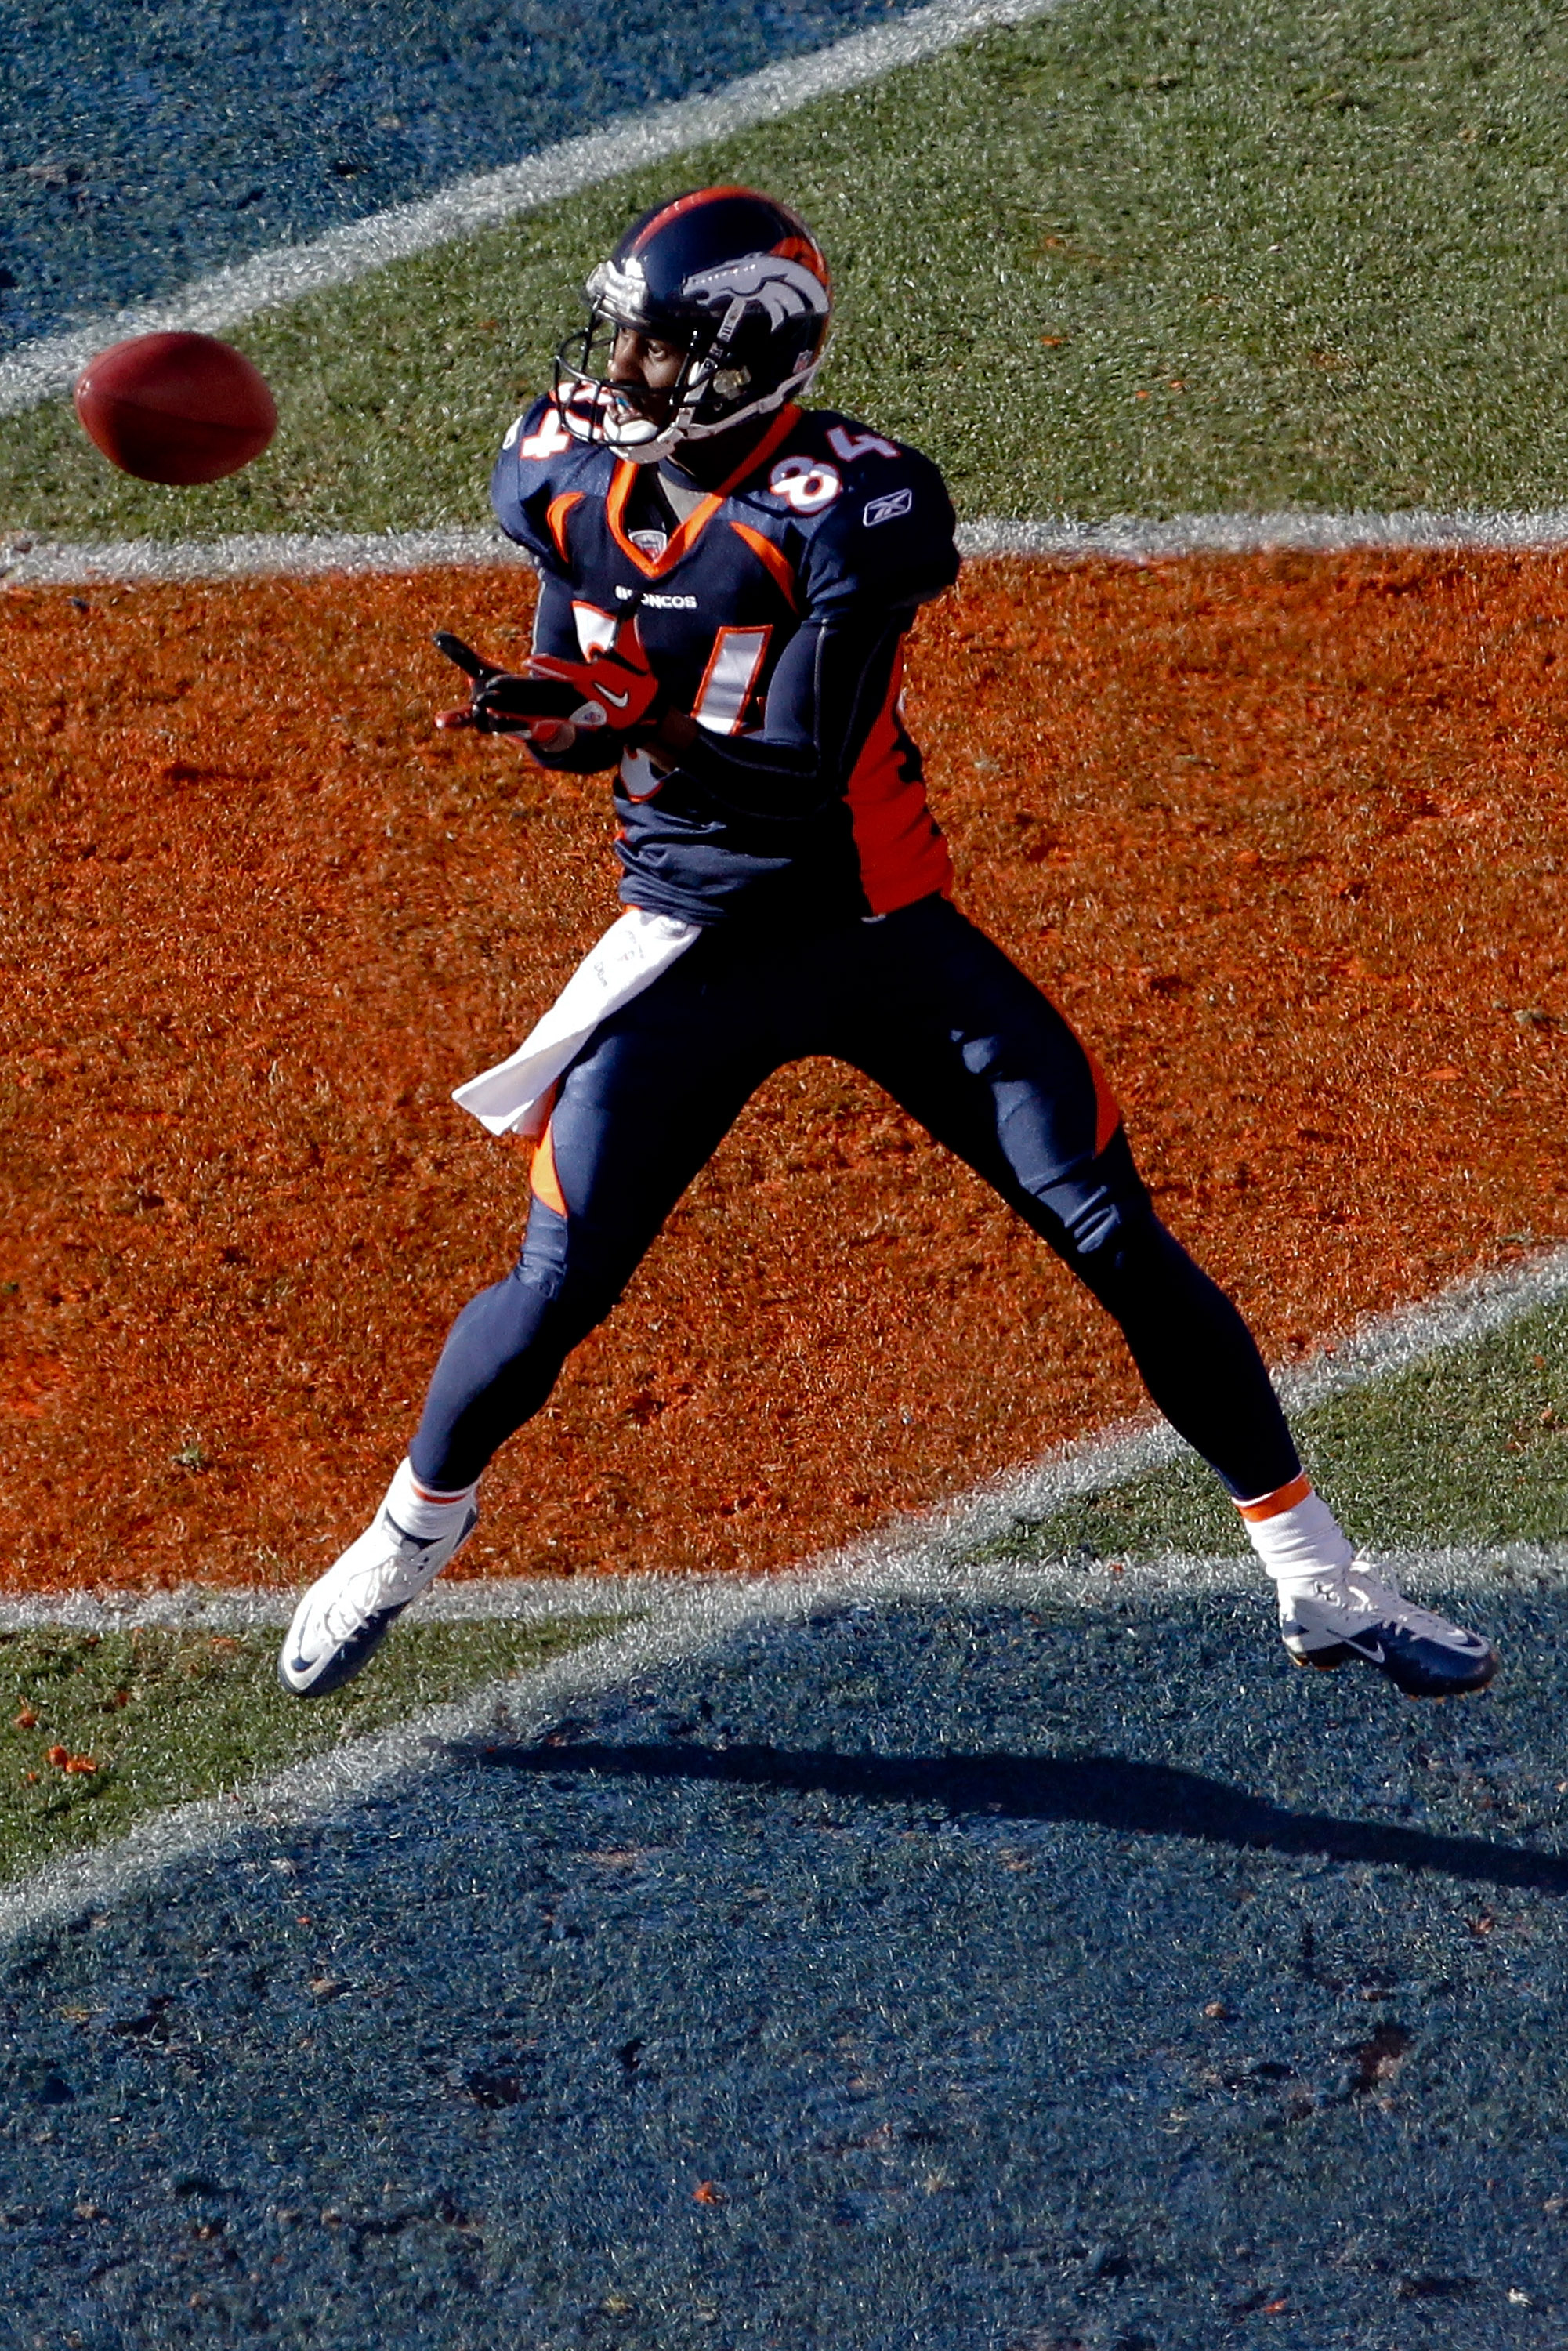 DENVER, CO - JANUARY 2:  Wide receiver Brandon Lloyd #84 of the Denver Broncos makes a touchdown reception against the San Diego Chargers during the first quarter at INVESCO Field at Mile High on January 2, 2011 in Denver, Colorado. (Photo by Justin Edmon